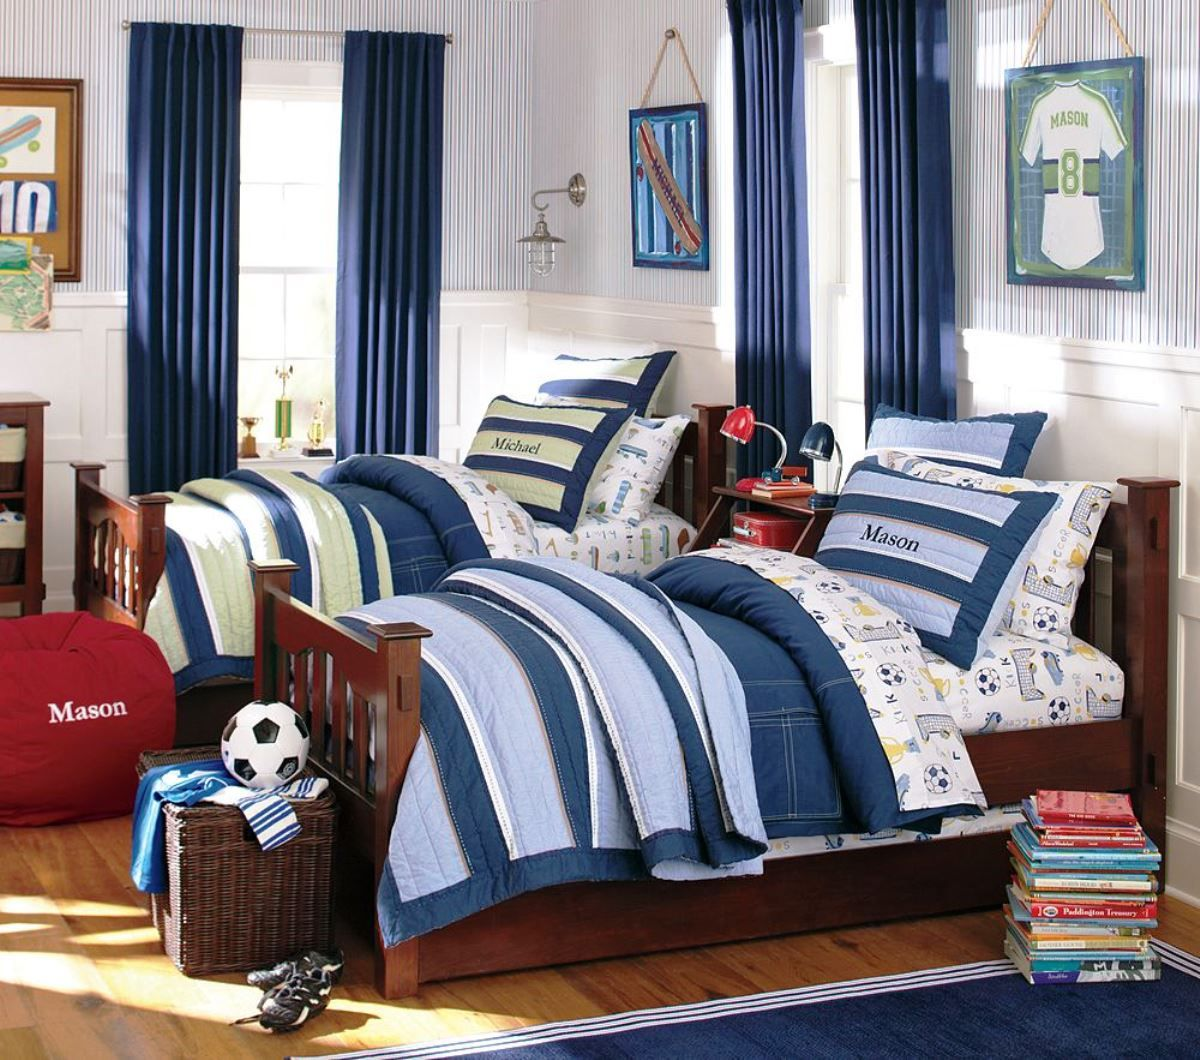 sport boy room design ideas - Boys Room Design Ideas